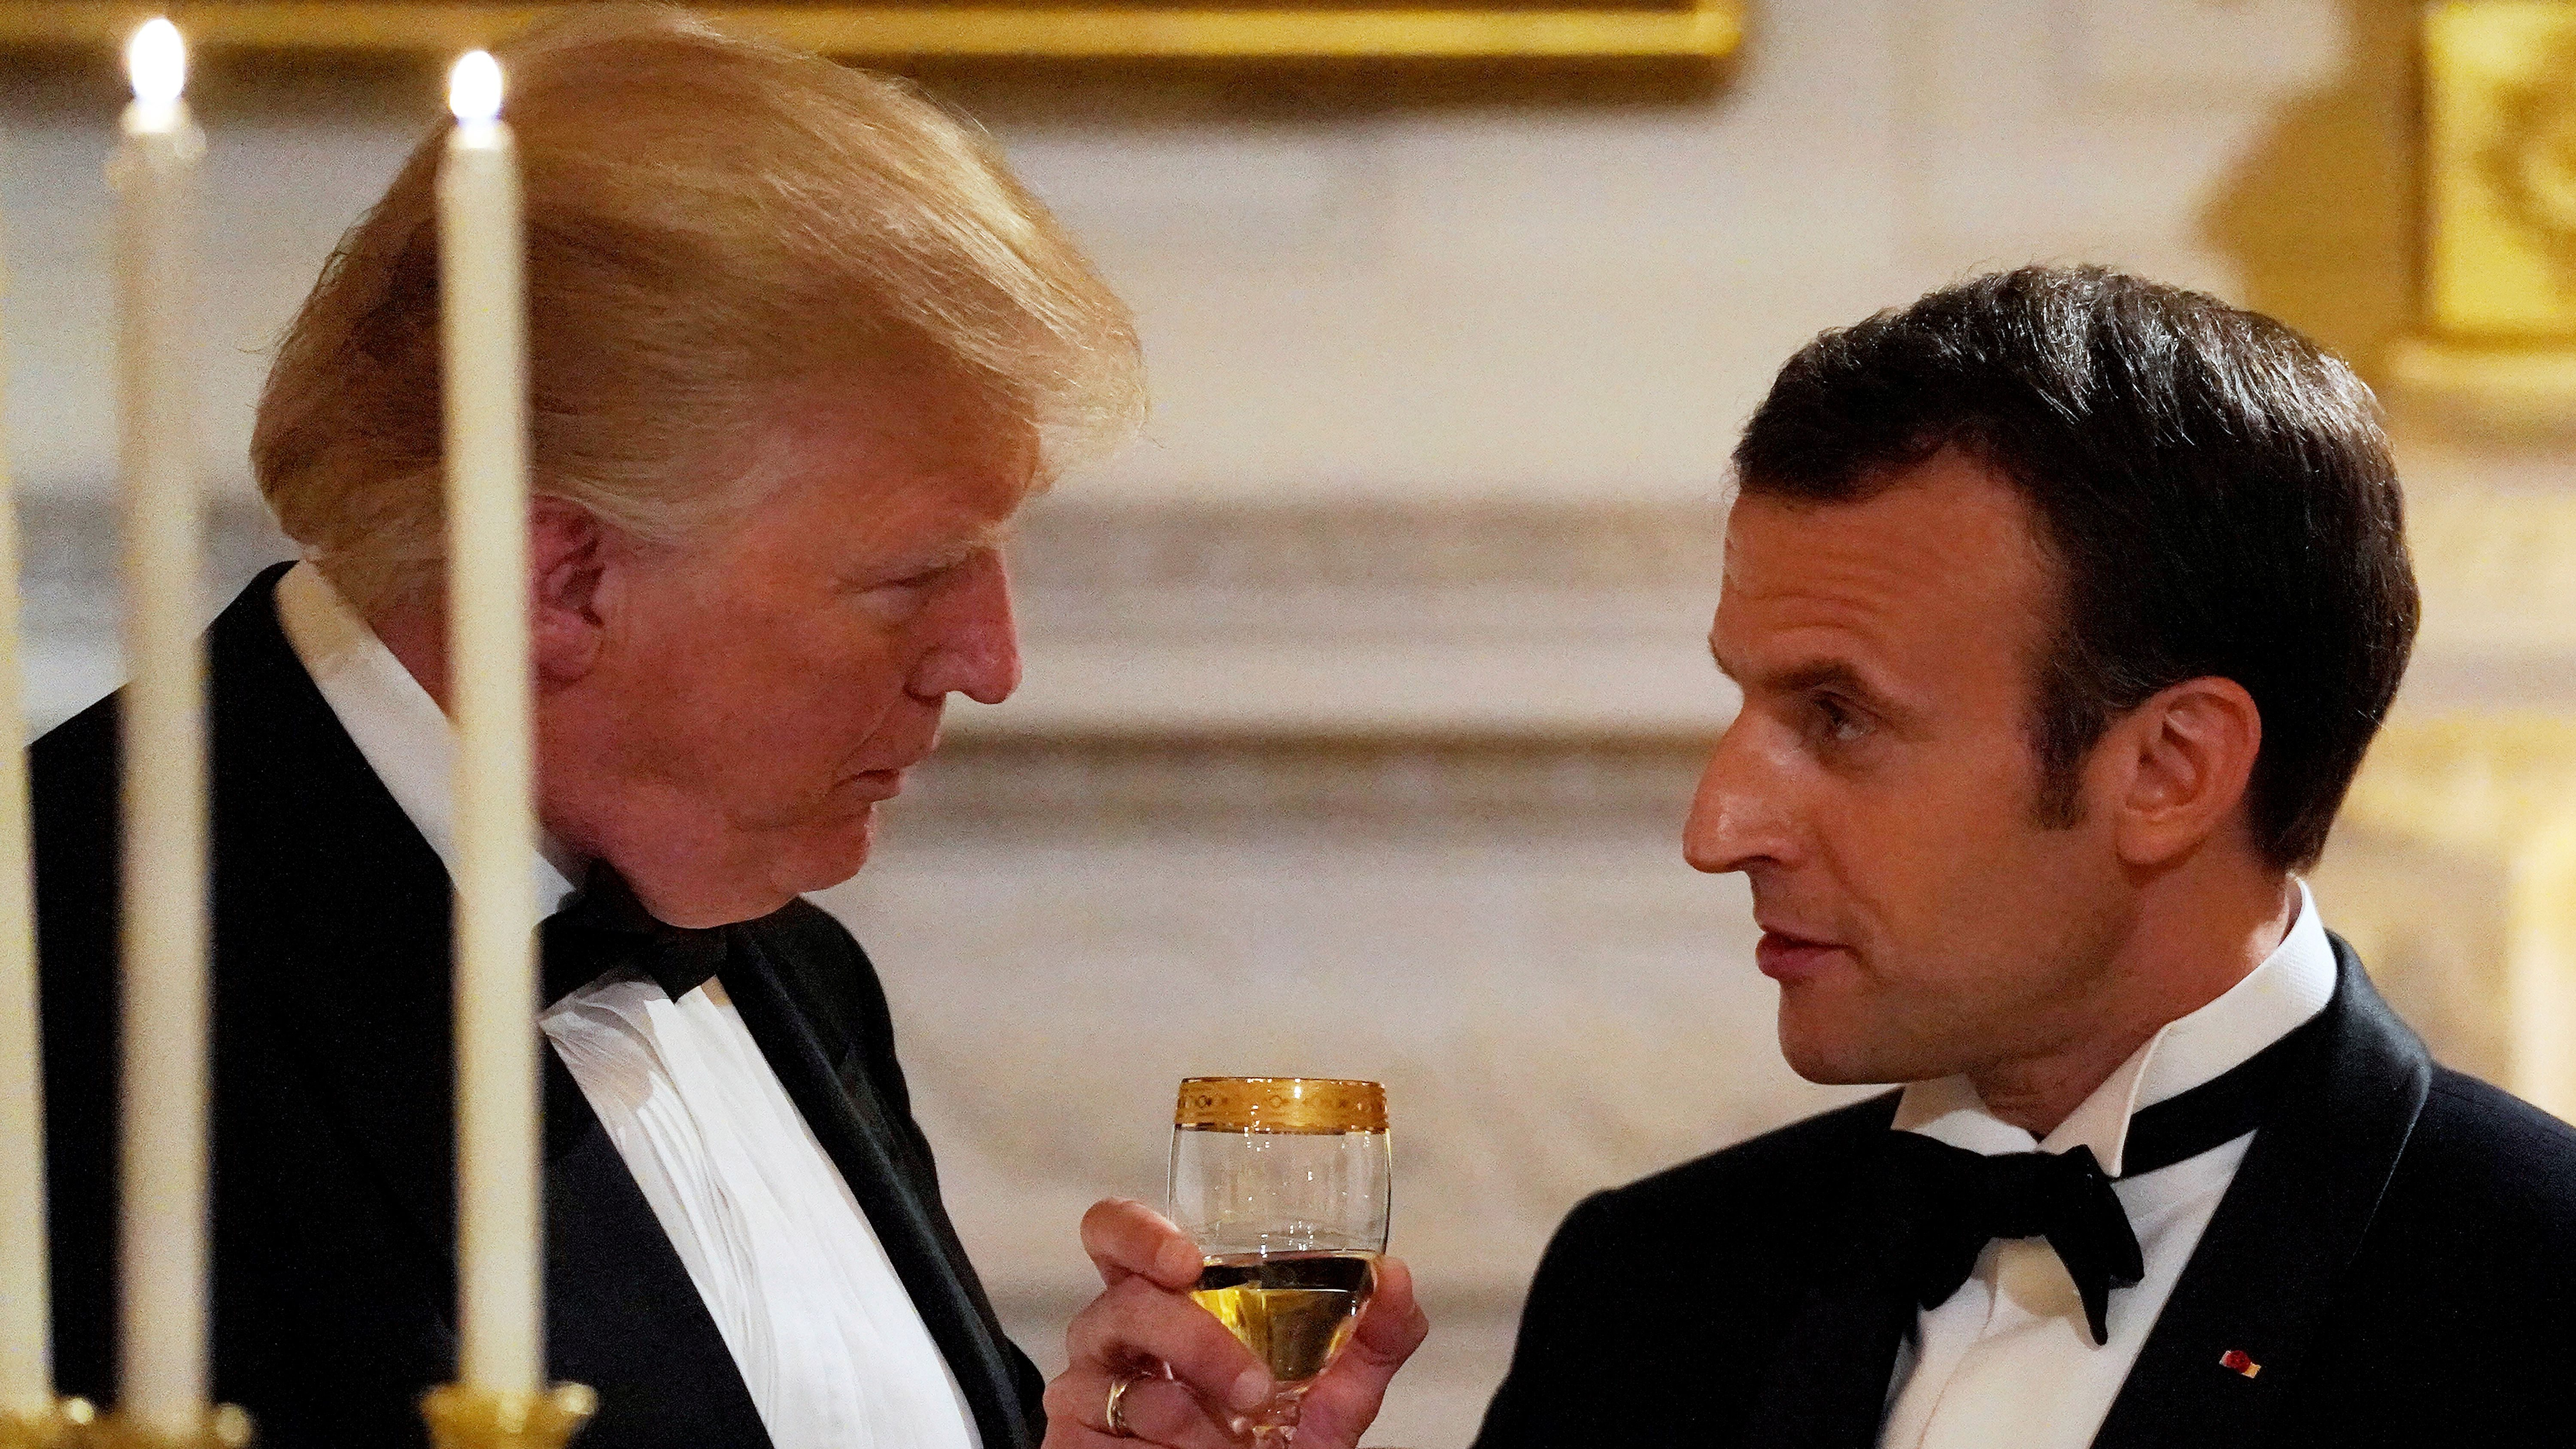 French President Emmanuel Macron toasts U.S. President Donald Trump during a State Dinner at the White House